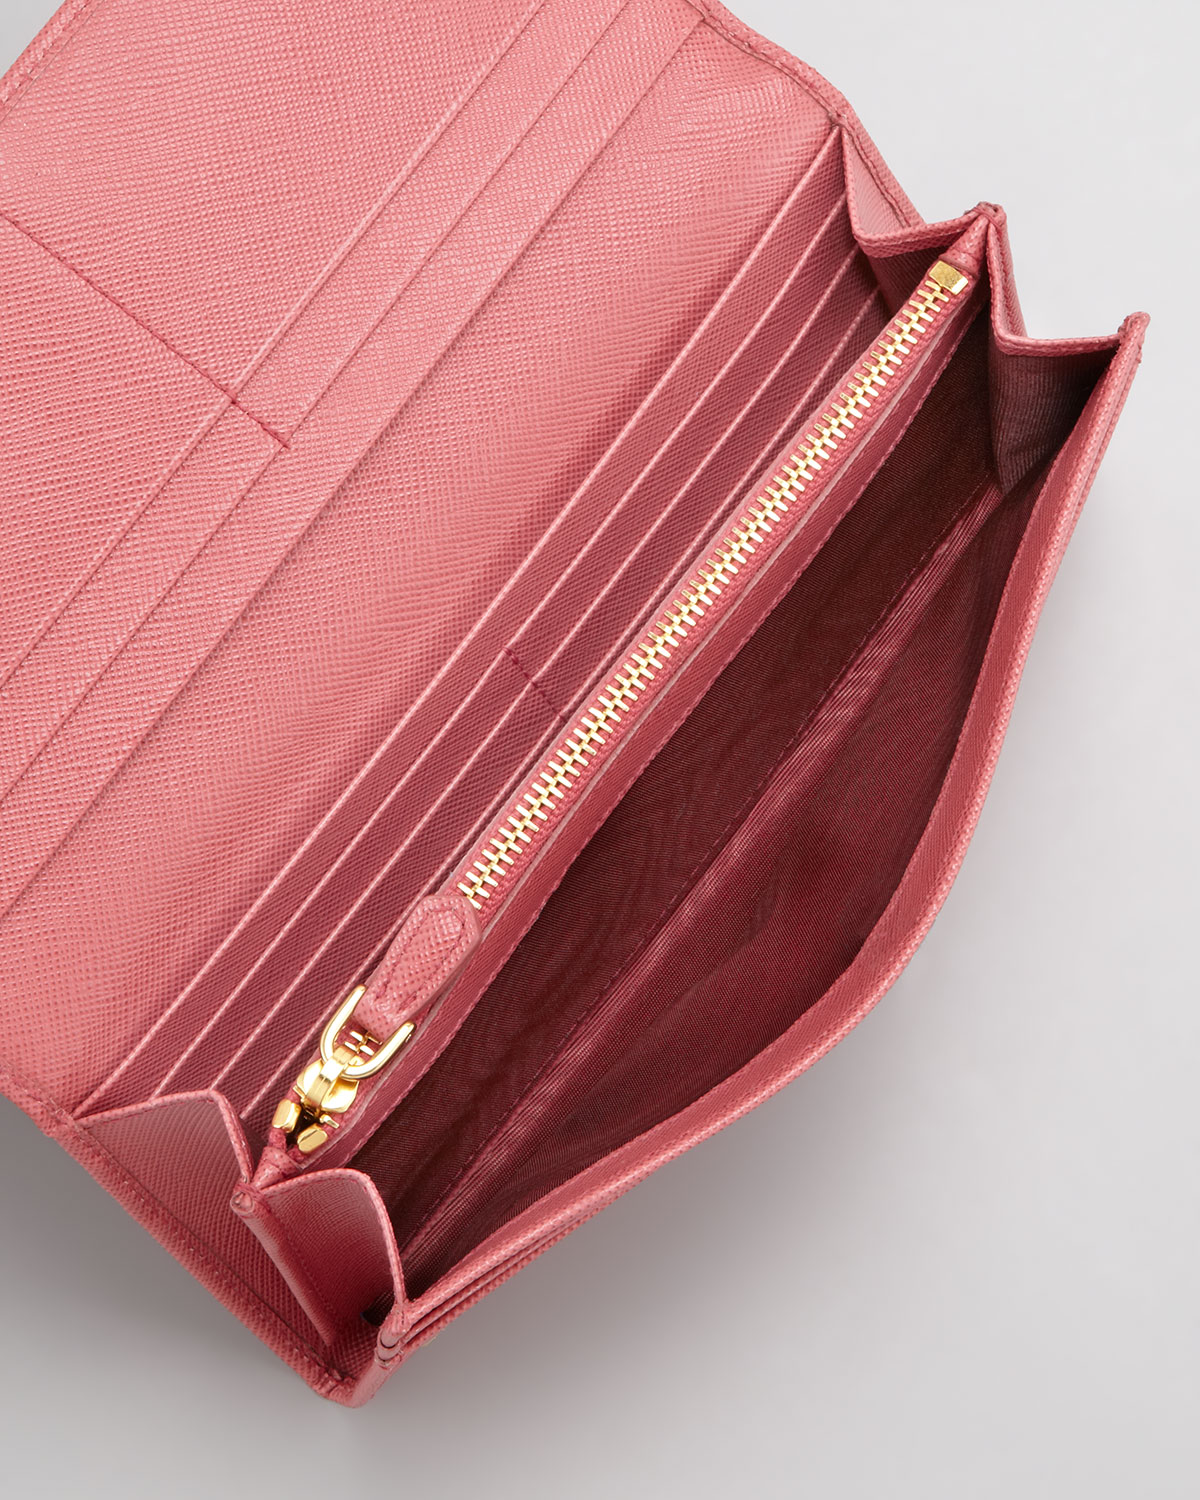 fce787ea5962be Prada Saffiano Triangle Continental Flap Wallet in Pink - Lyst